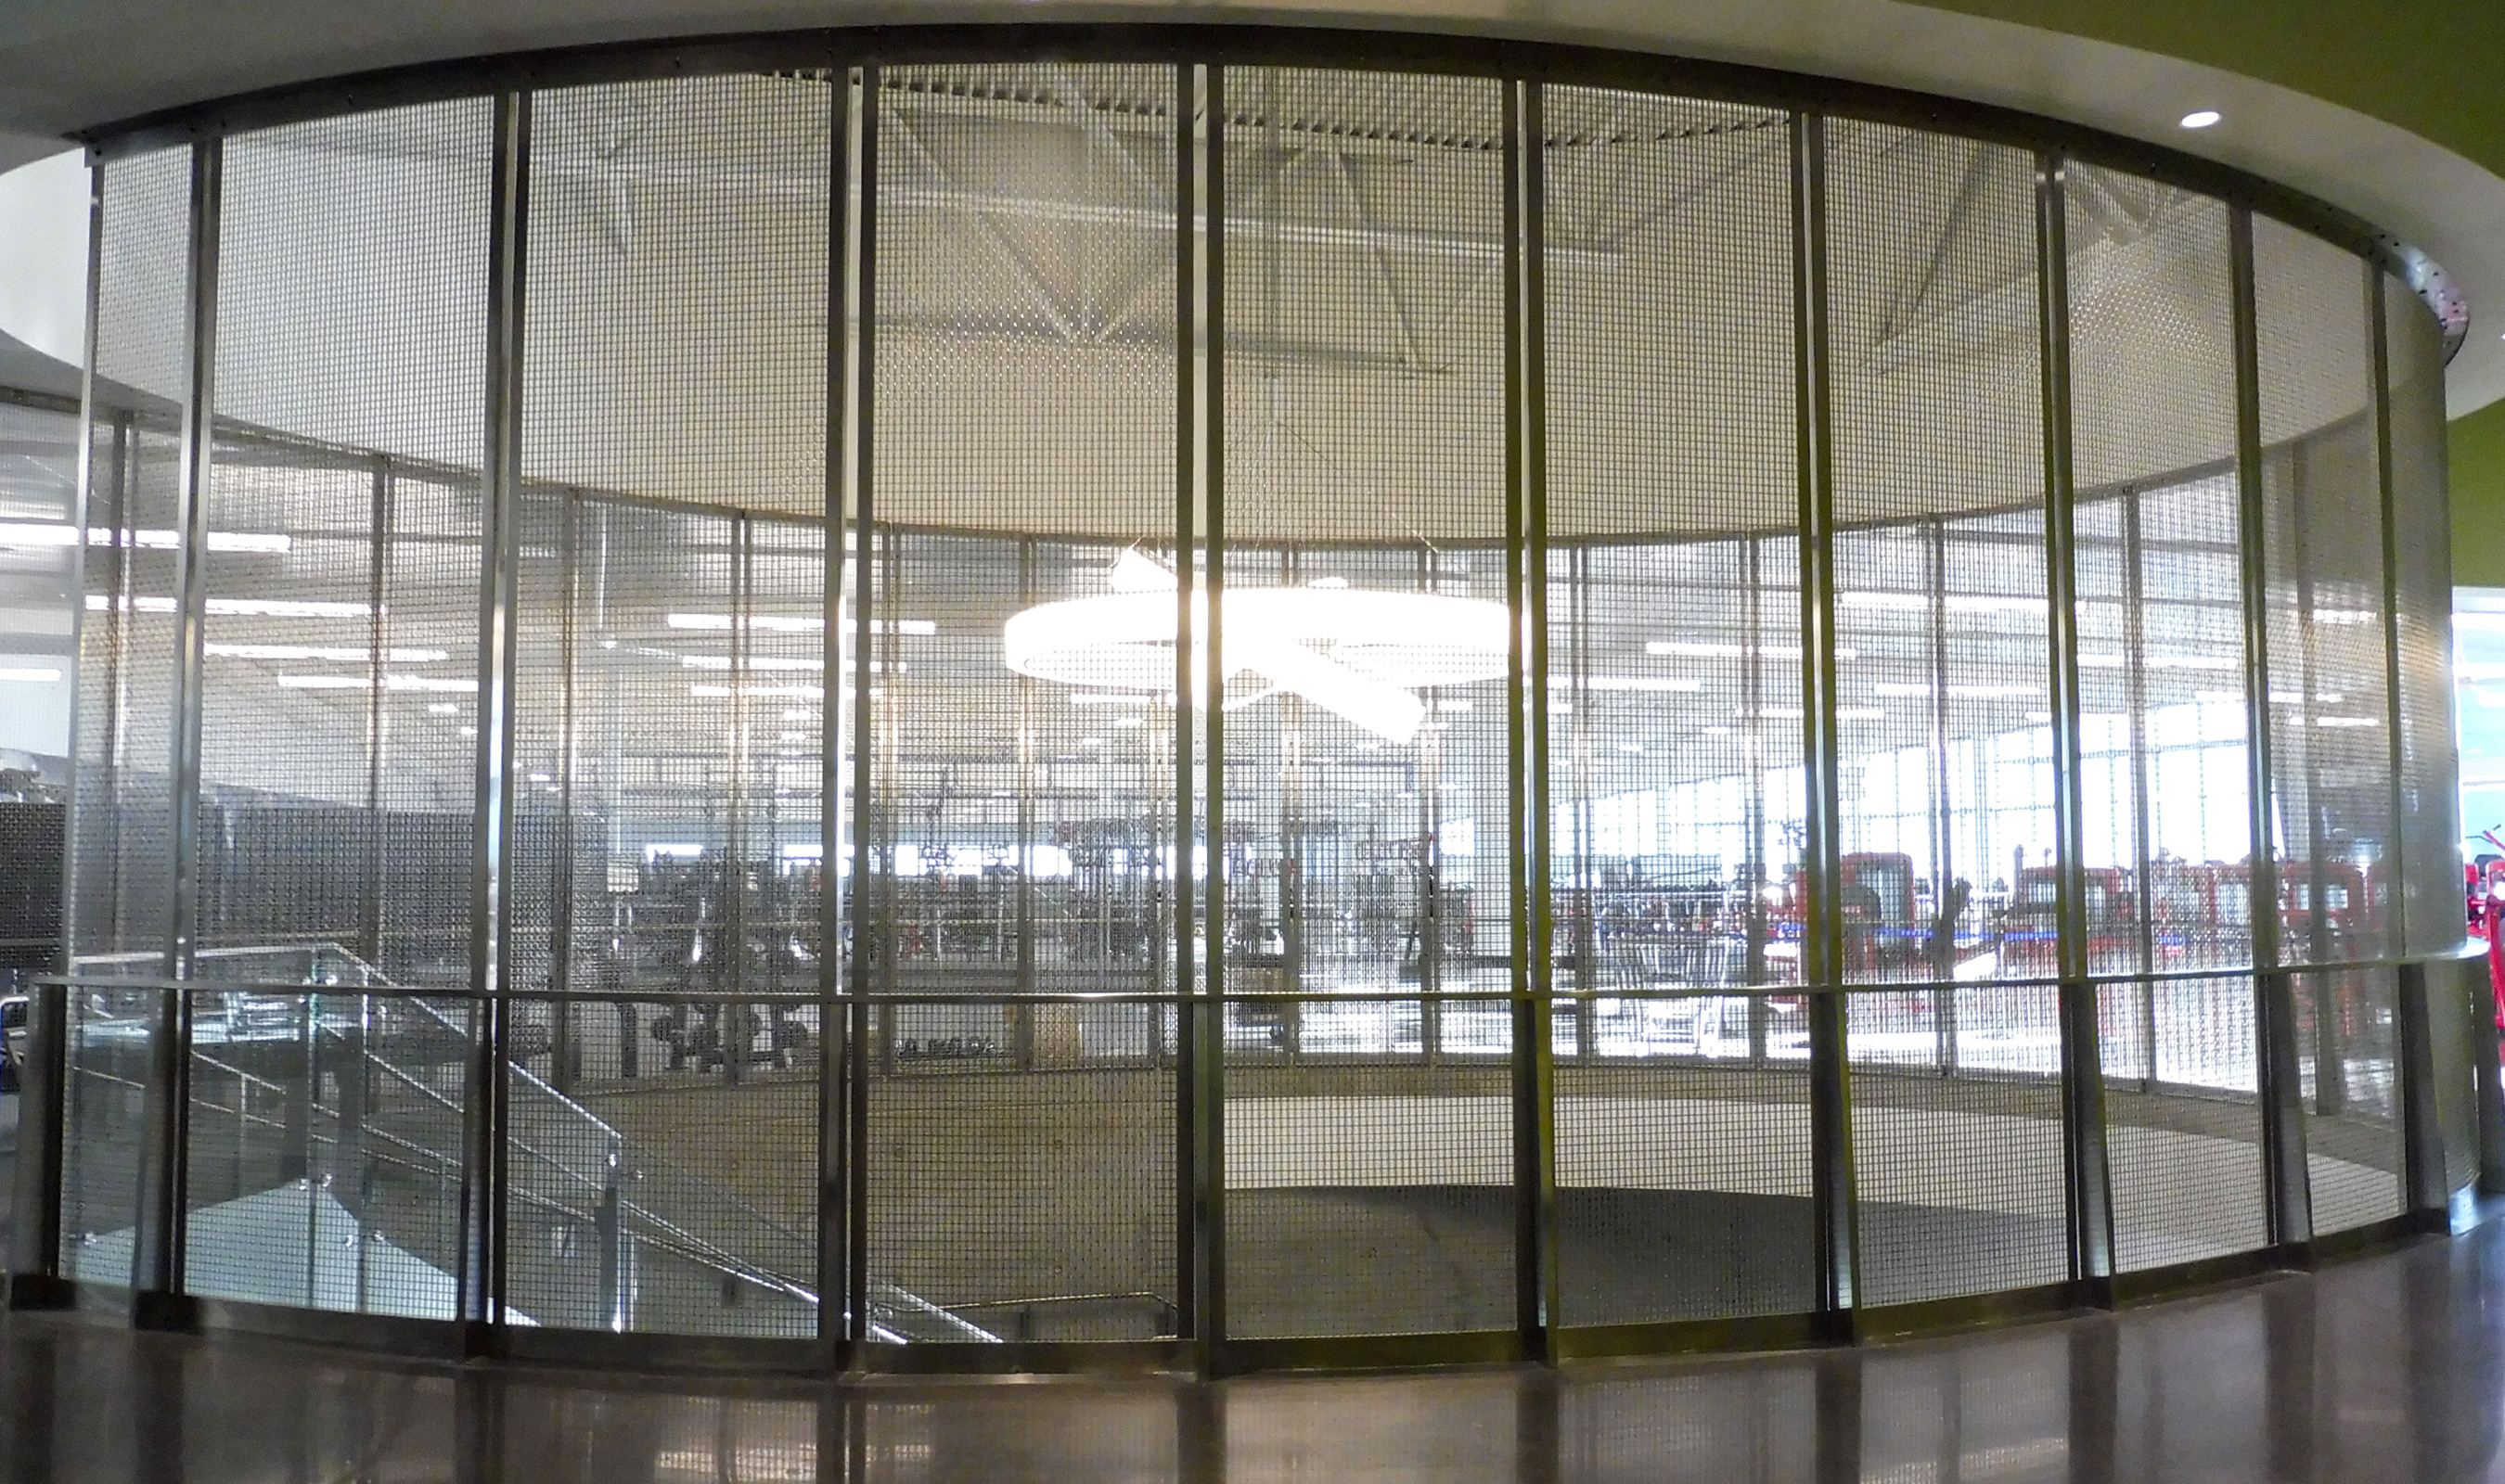 The 60% open area of Banker Wire's SJD-7 woven wire mesh allows for uninterrupted sight lines while still giving a sense of separation in the building.